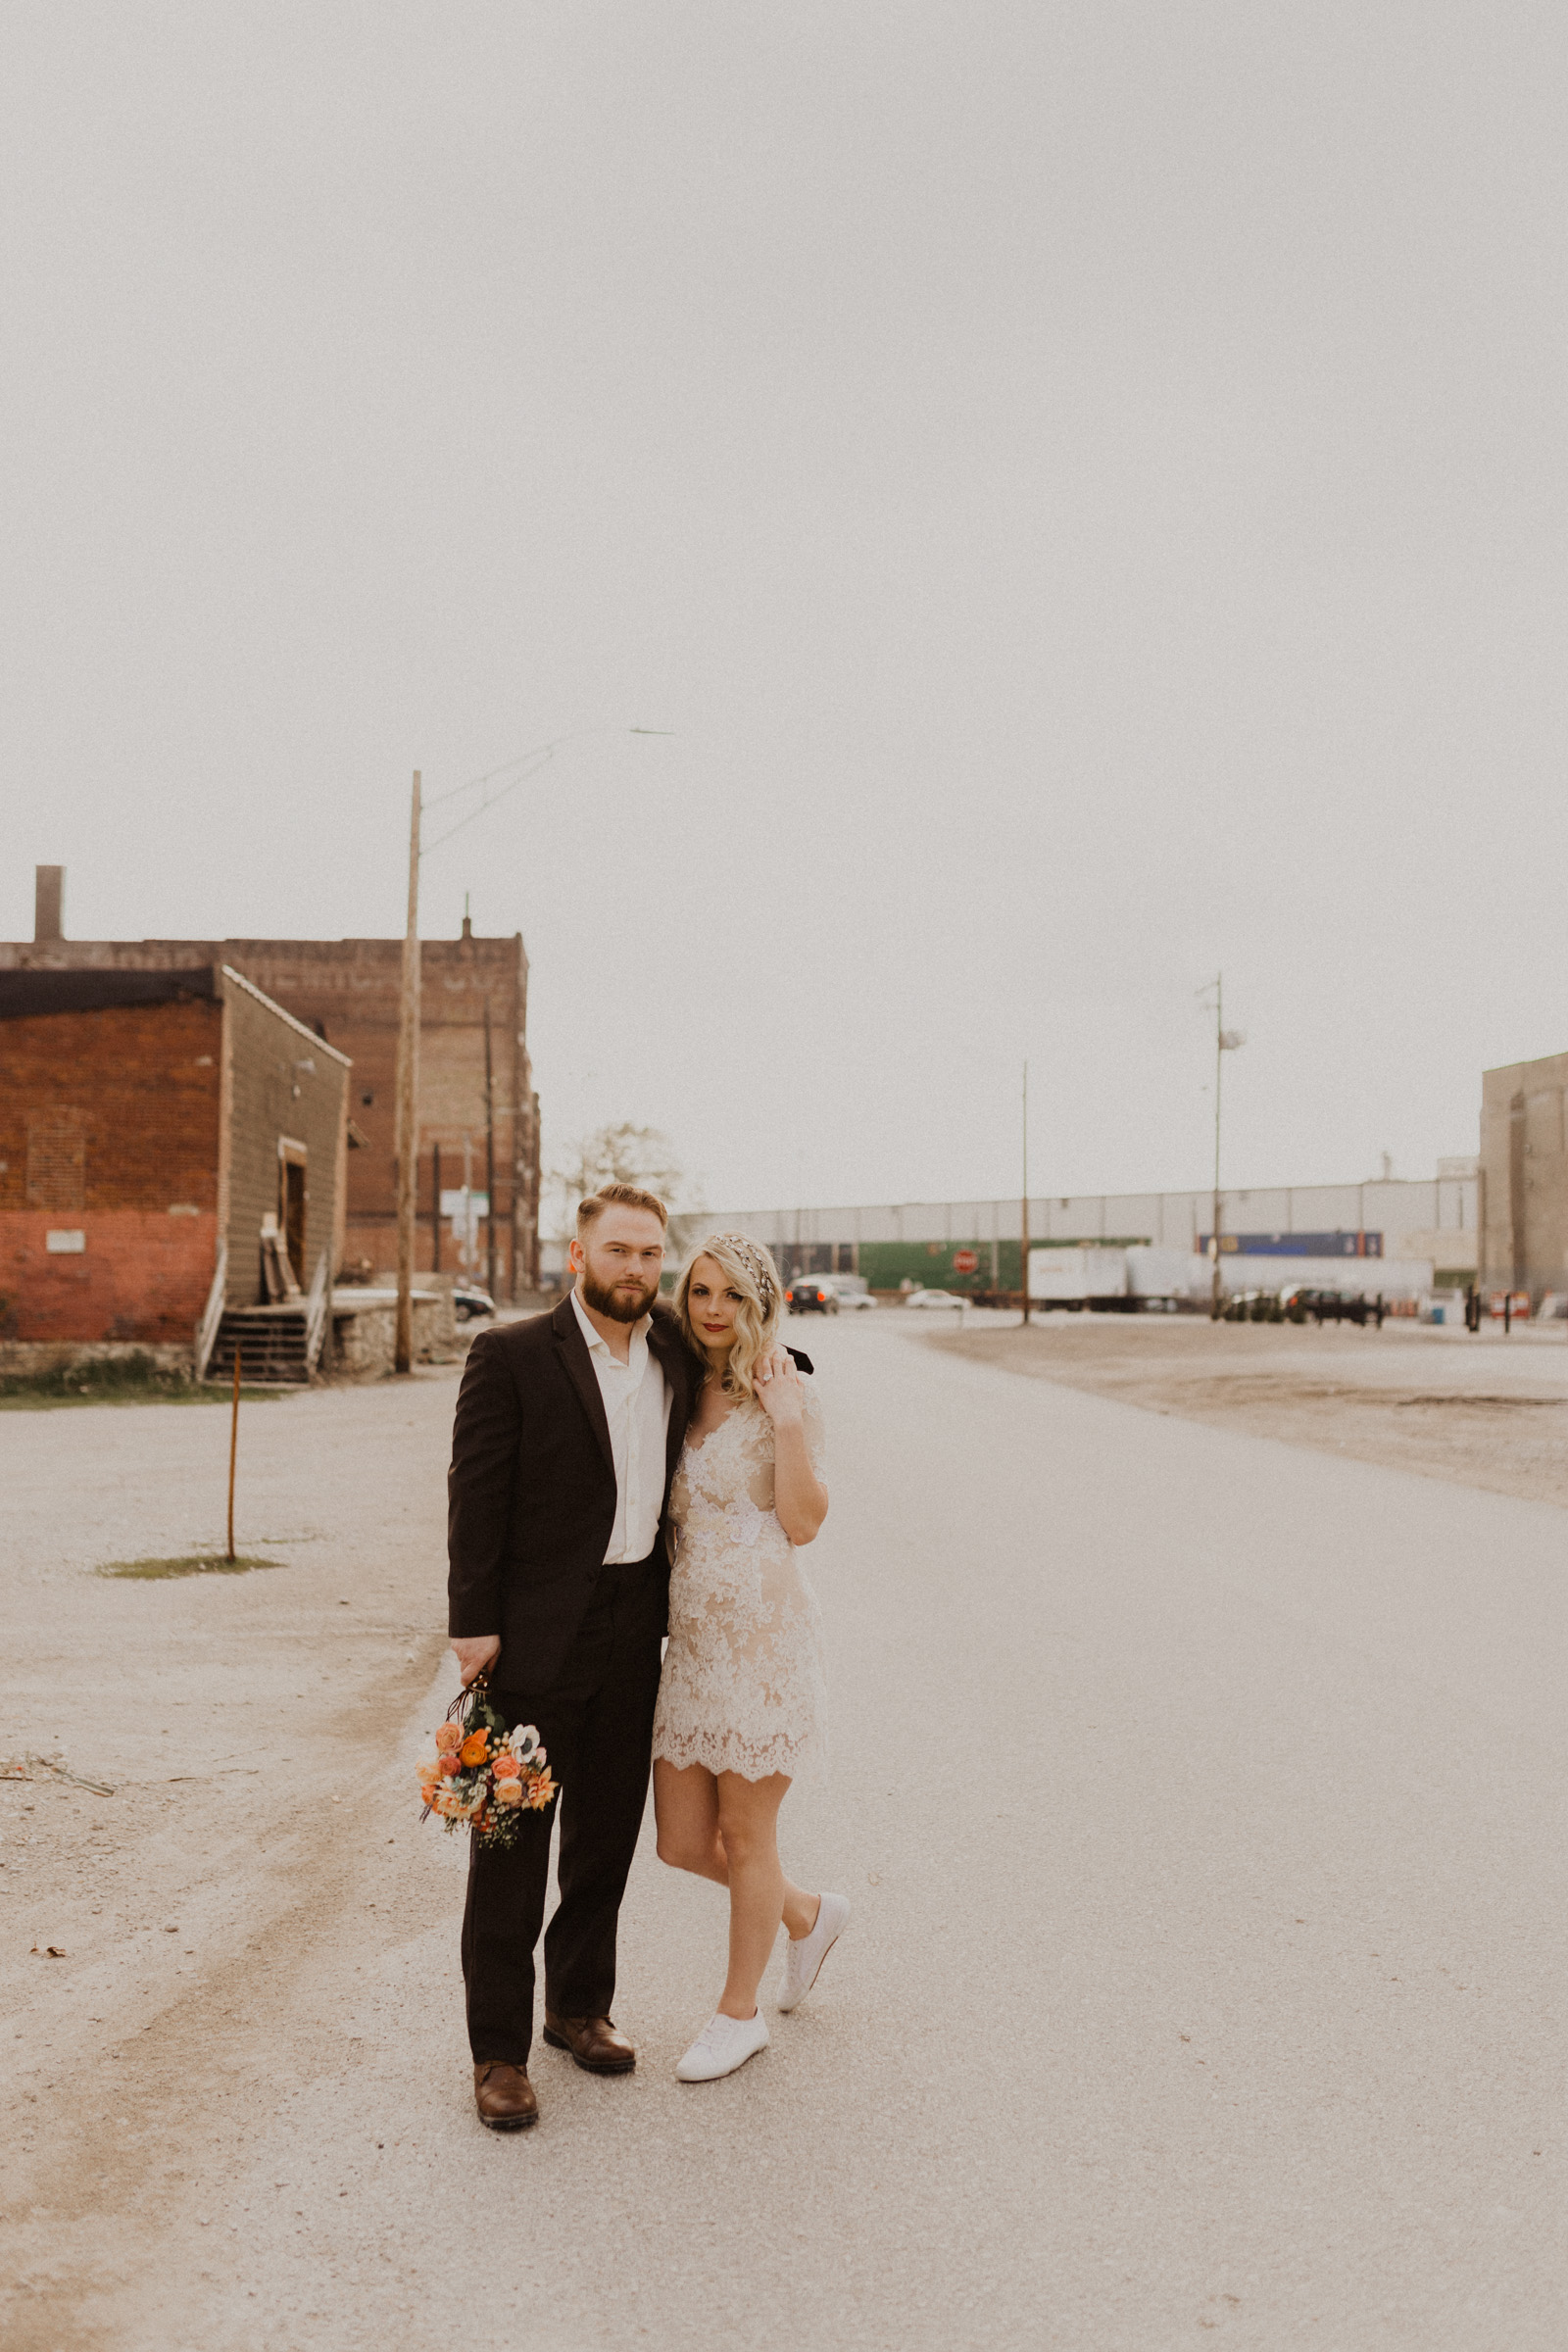 alyssa barletter photography styled shoot wedding inspiration kansas city west bottoms photographer motorcycle edgy intimate-32.jpg